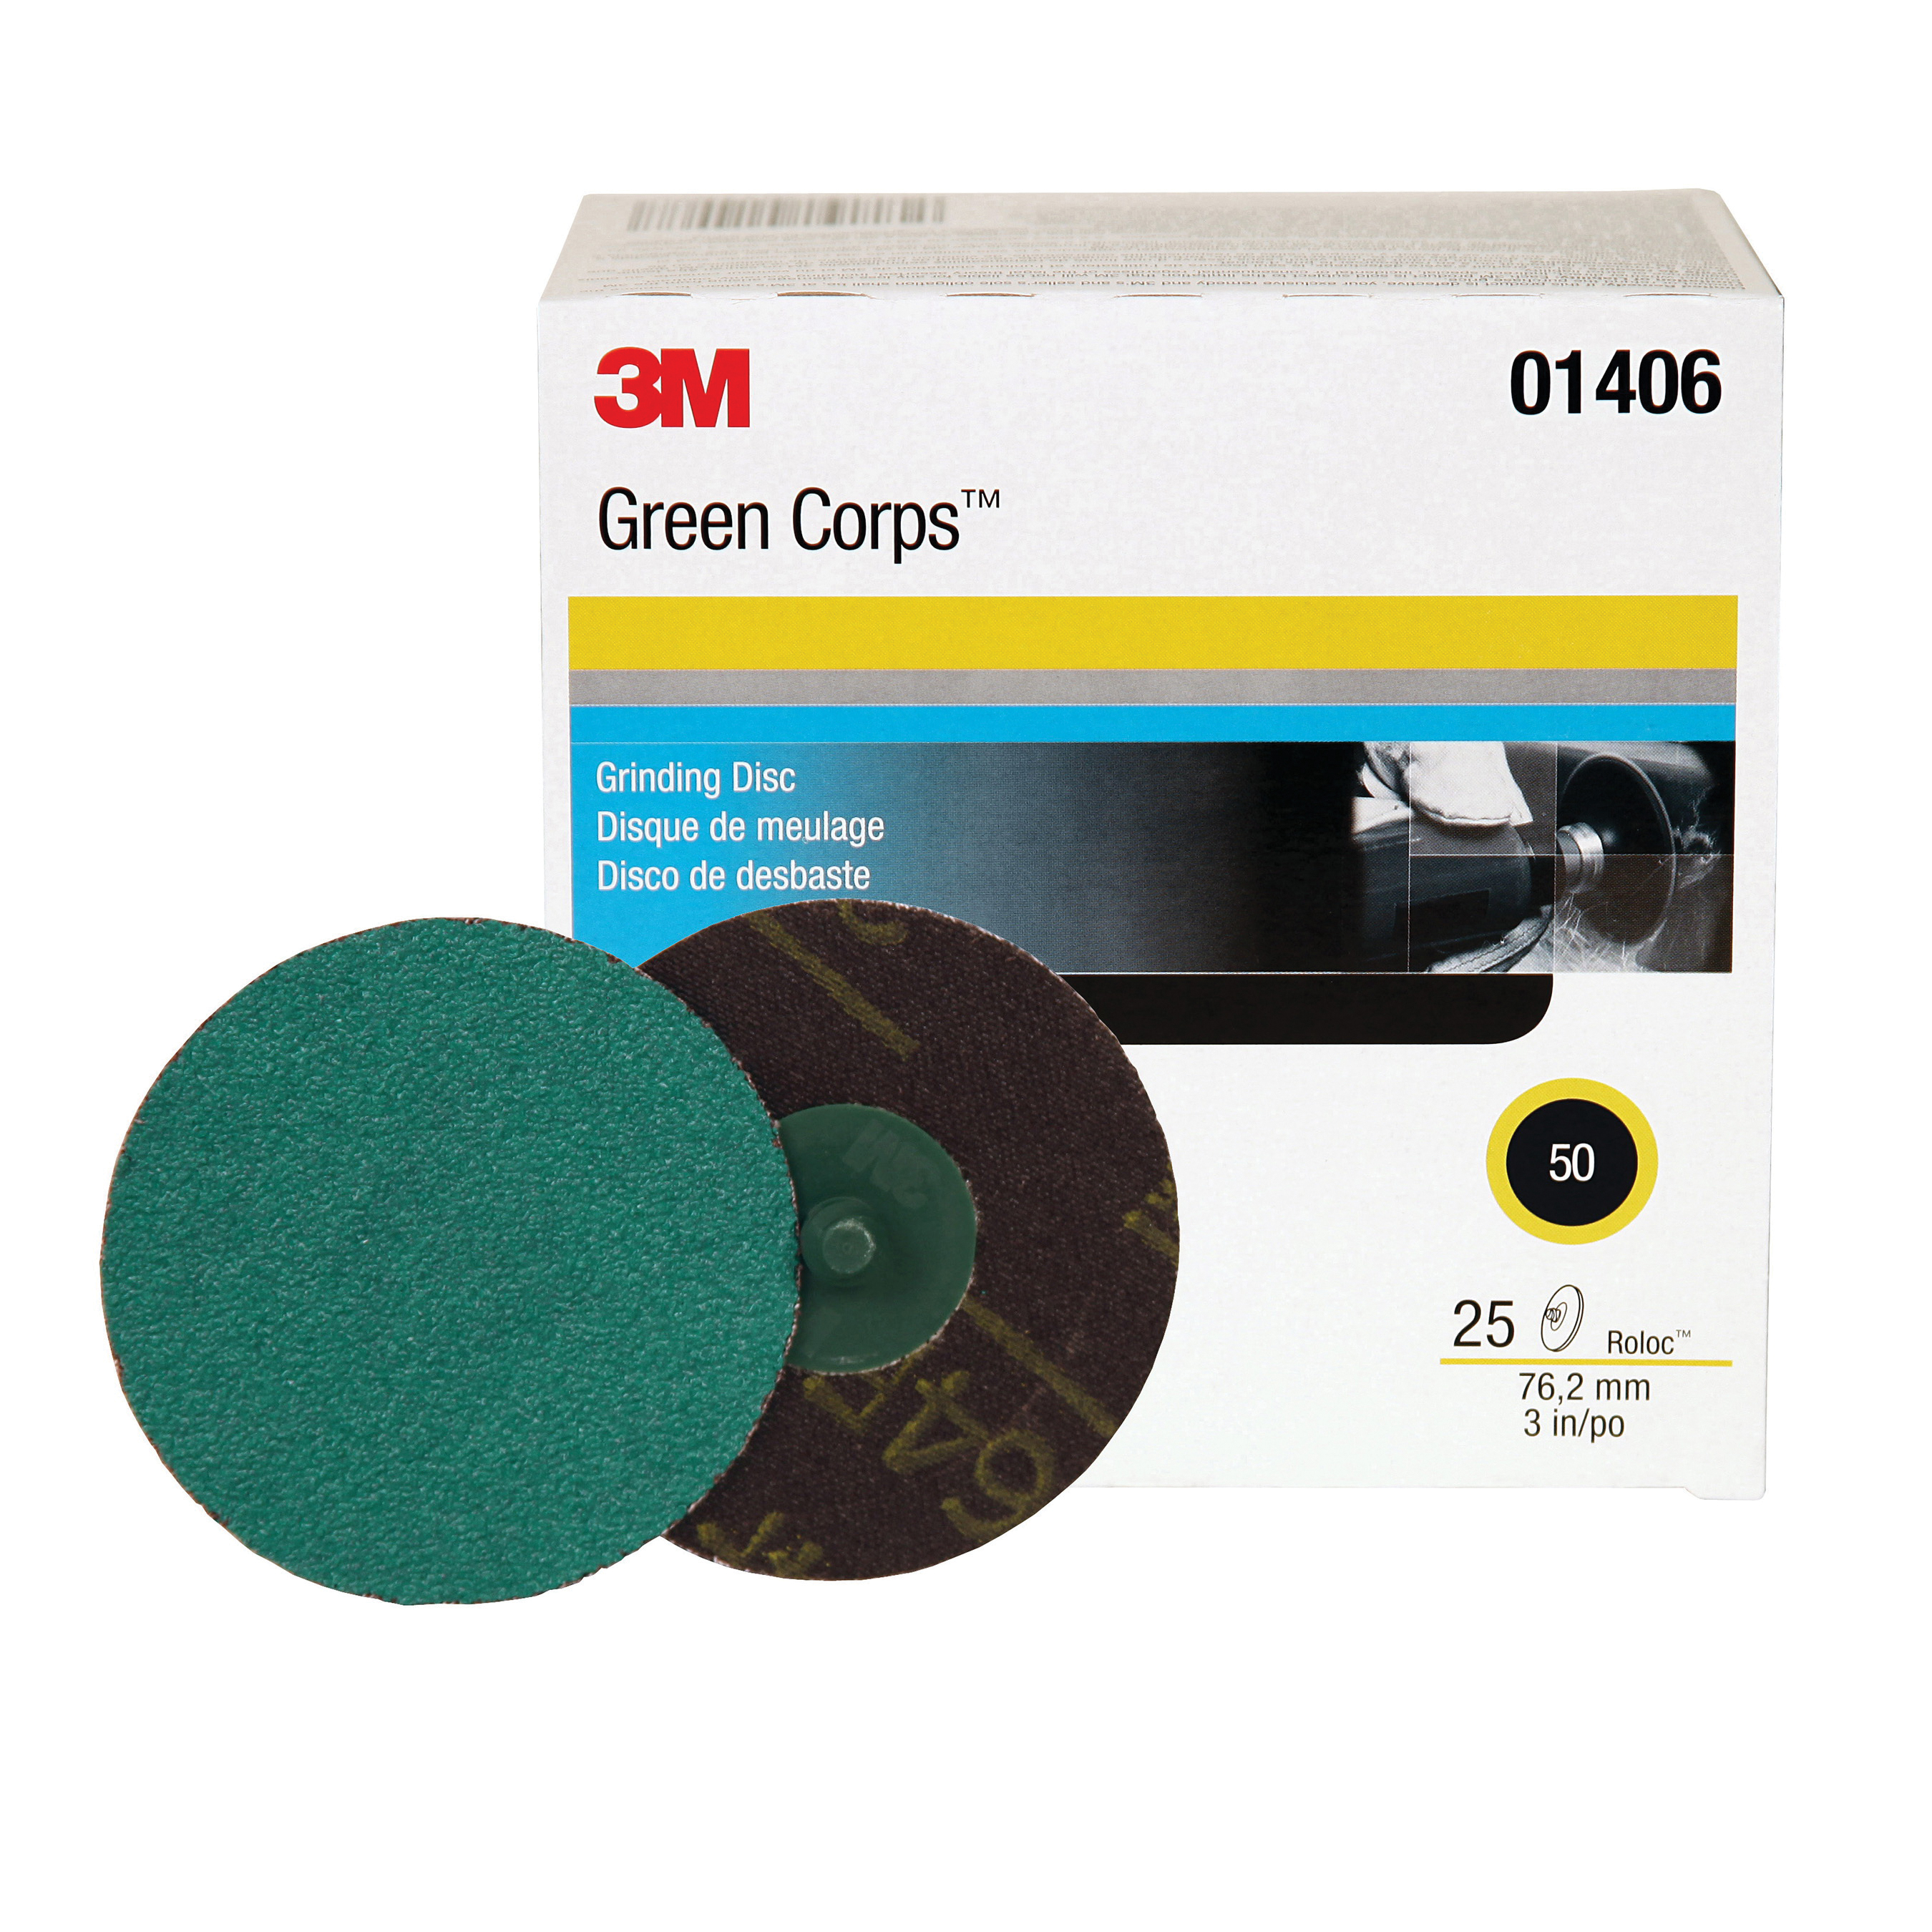 Green Corps™ Roloc™ 051131-01396 264F Quick-Change Coated Abrasive Disc, 2 in Dia Disc, 50 Grit, Coarse Grade, Aluminum Oxide Abrasive, Roloc™ Attachment